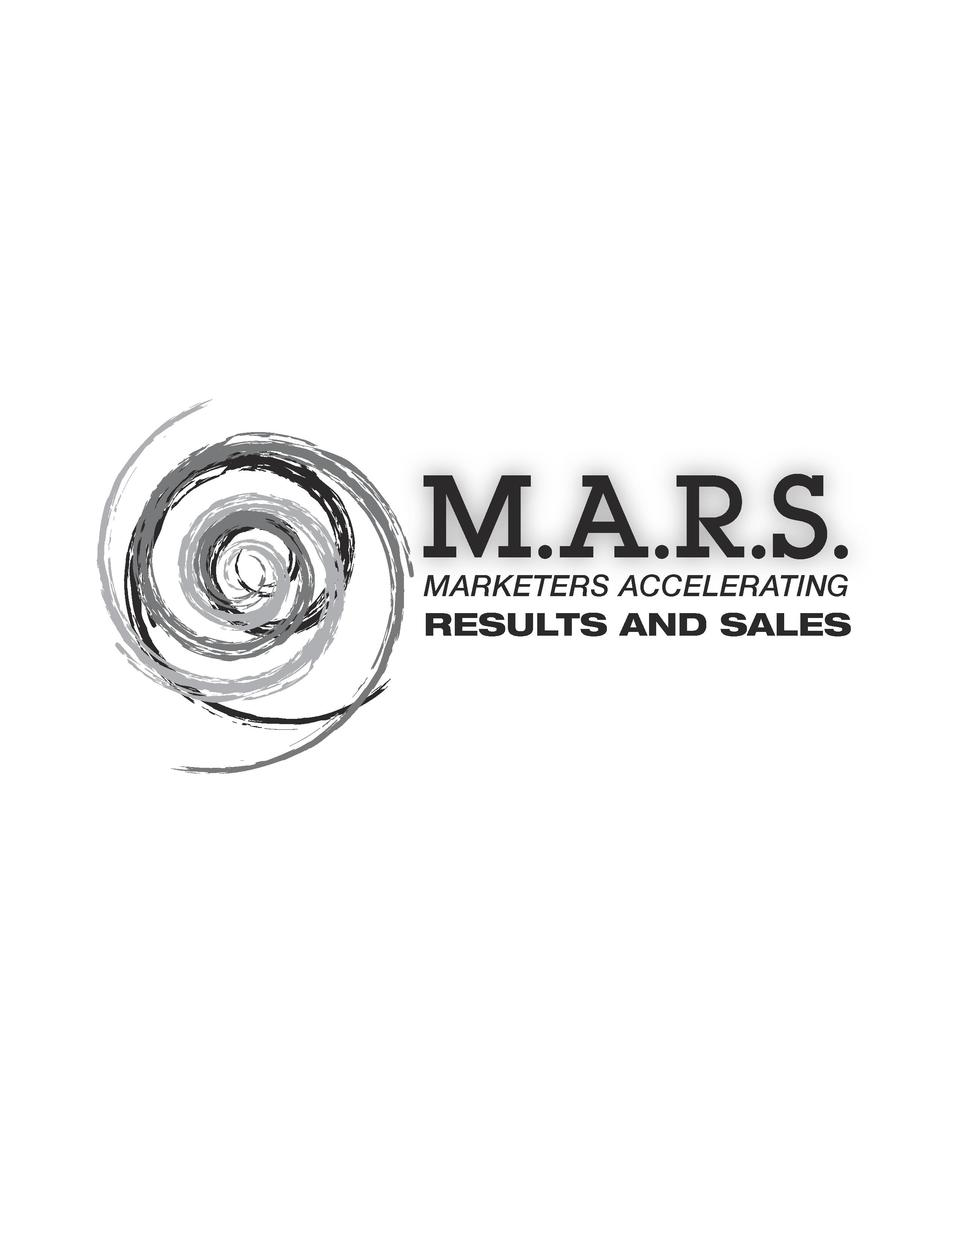 M.A.R.S. MARKETERS ACCELERATING  RESULTS AND SALES